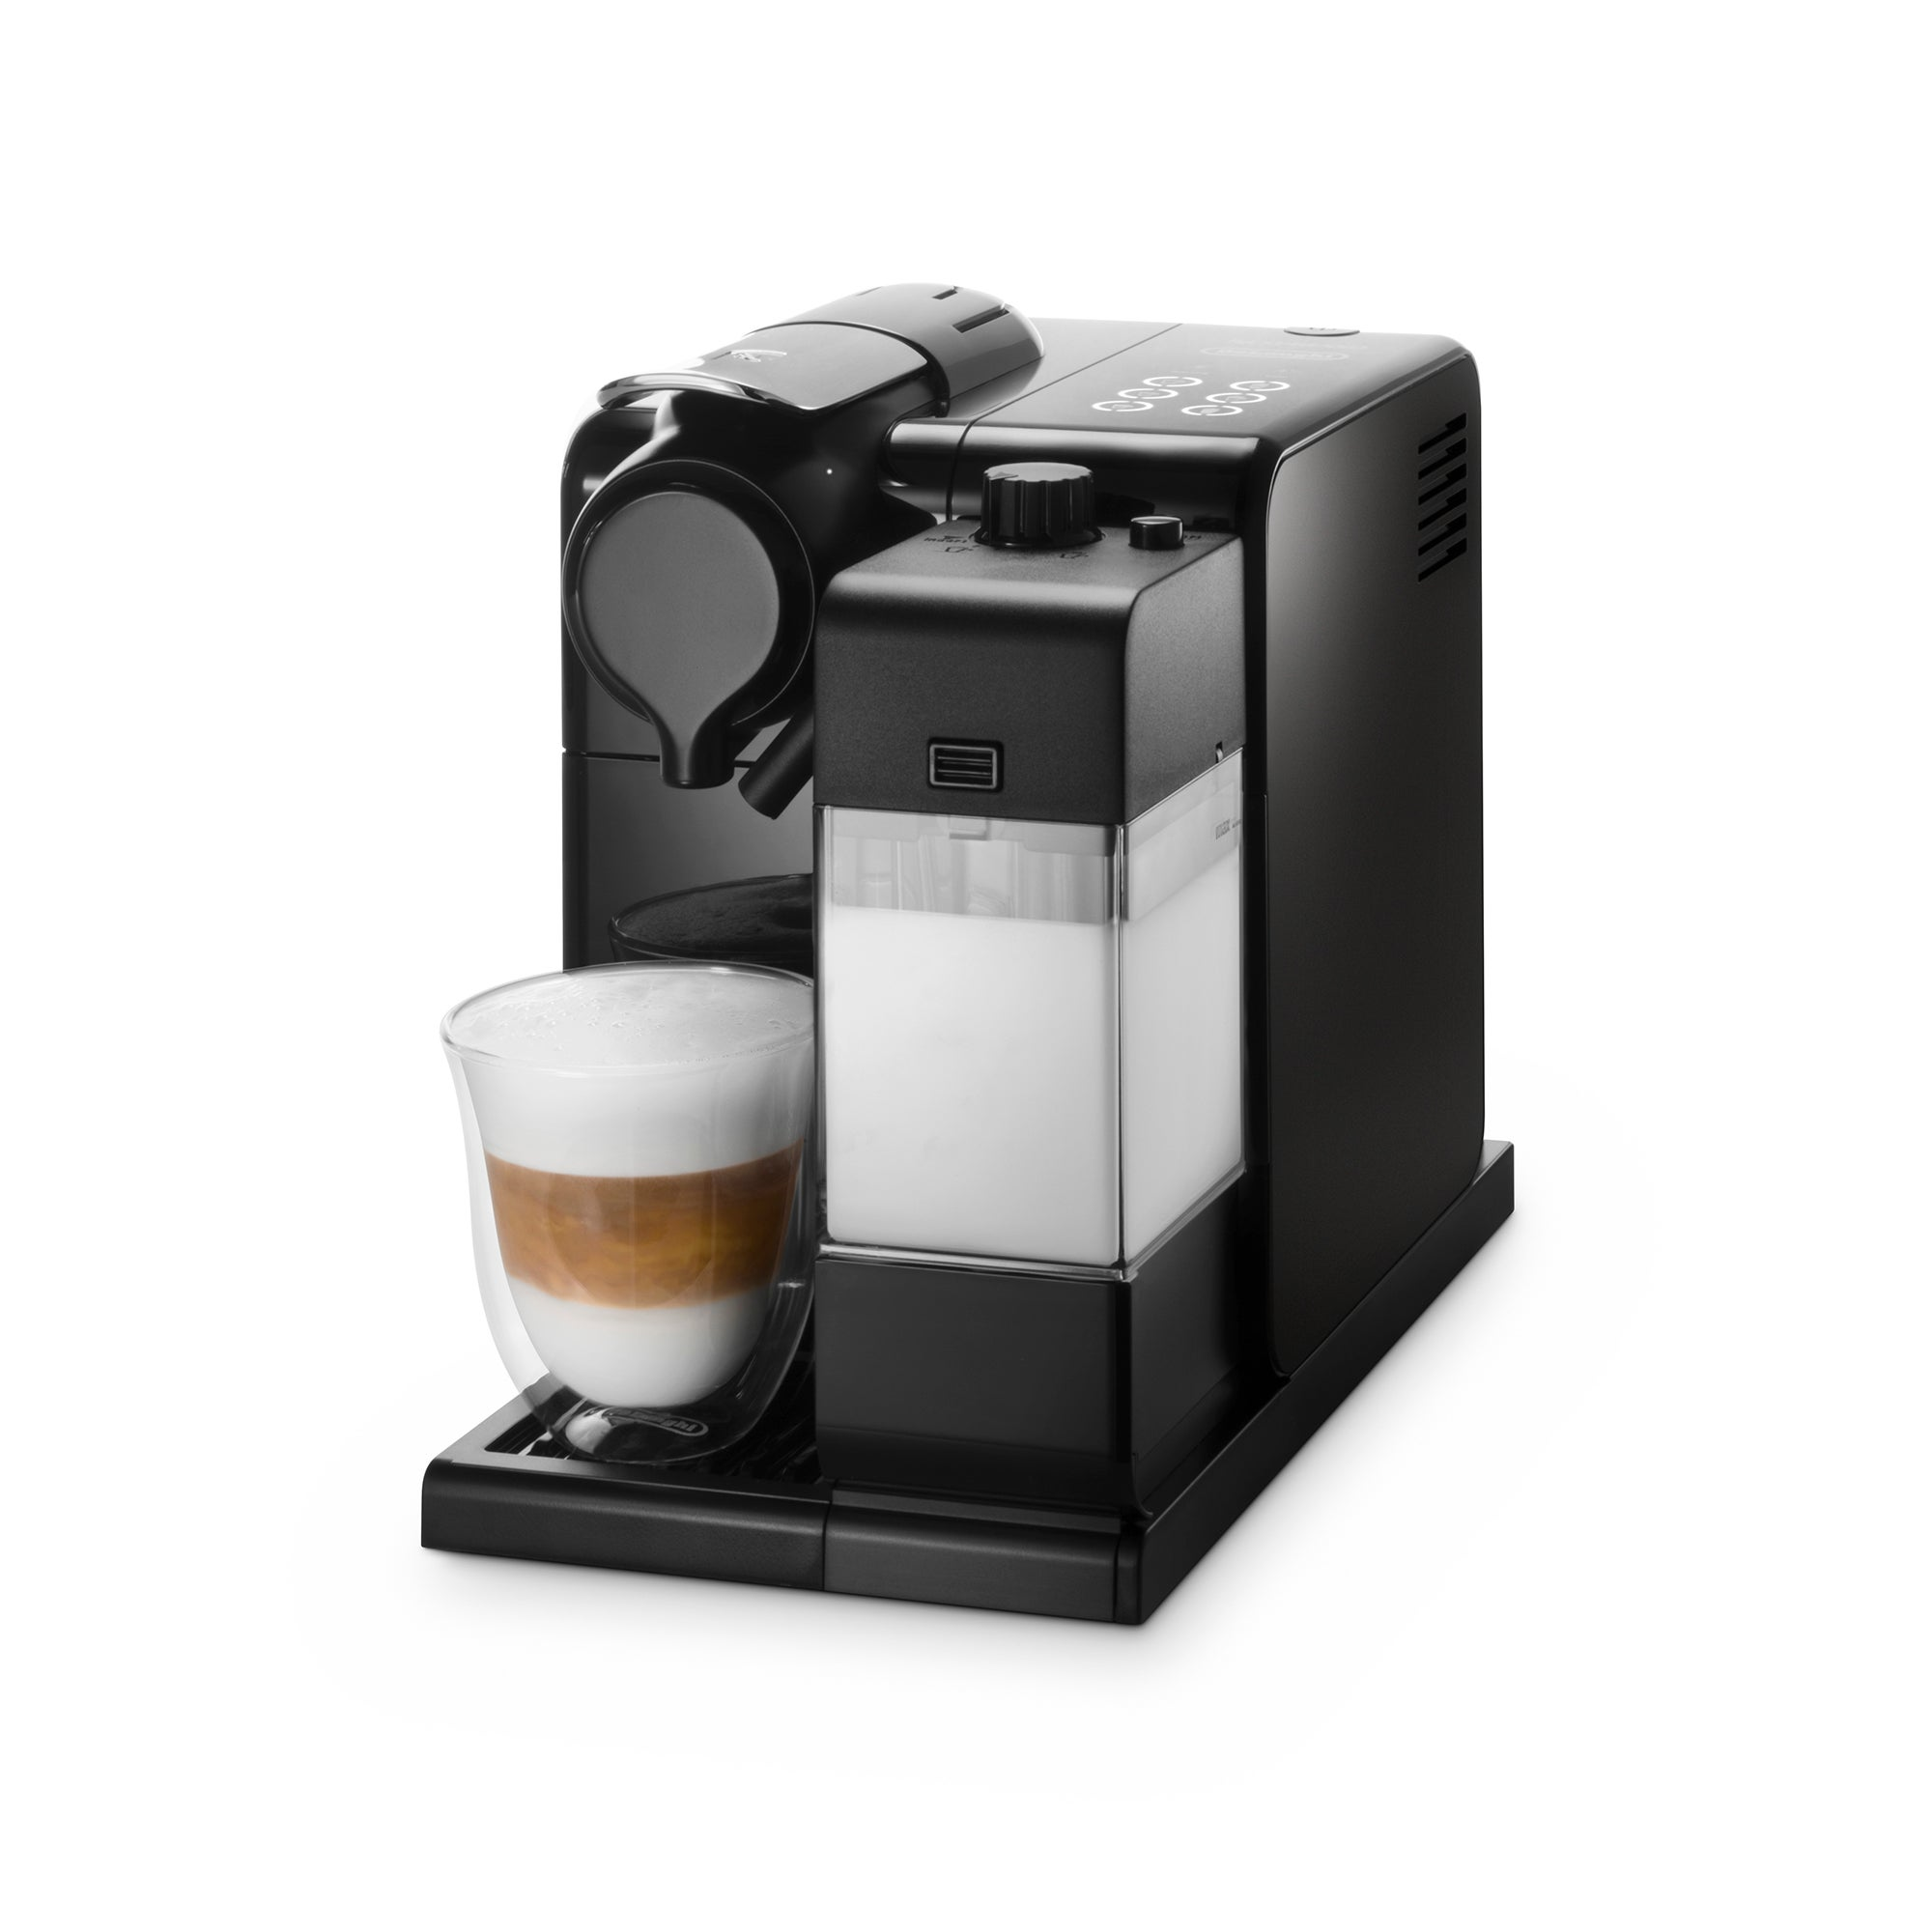 Photo of Delonghi nespresso lattis black coffee machine en550b black